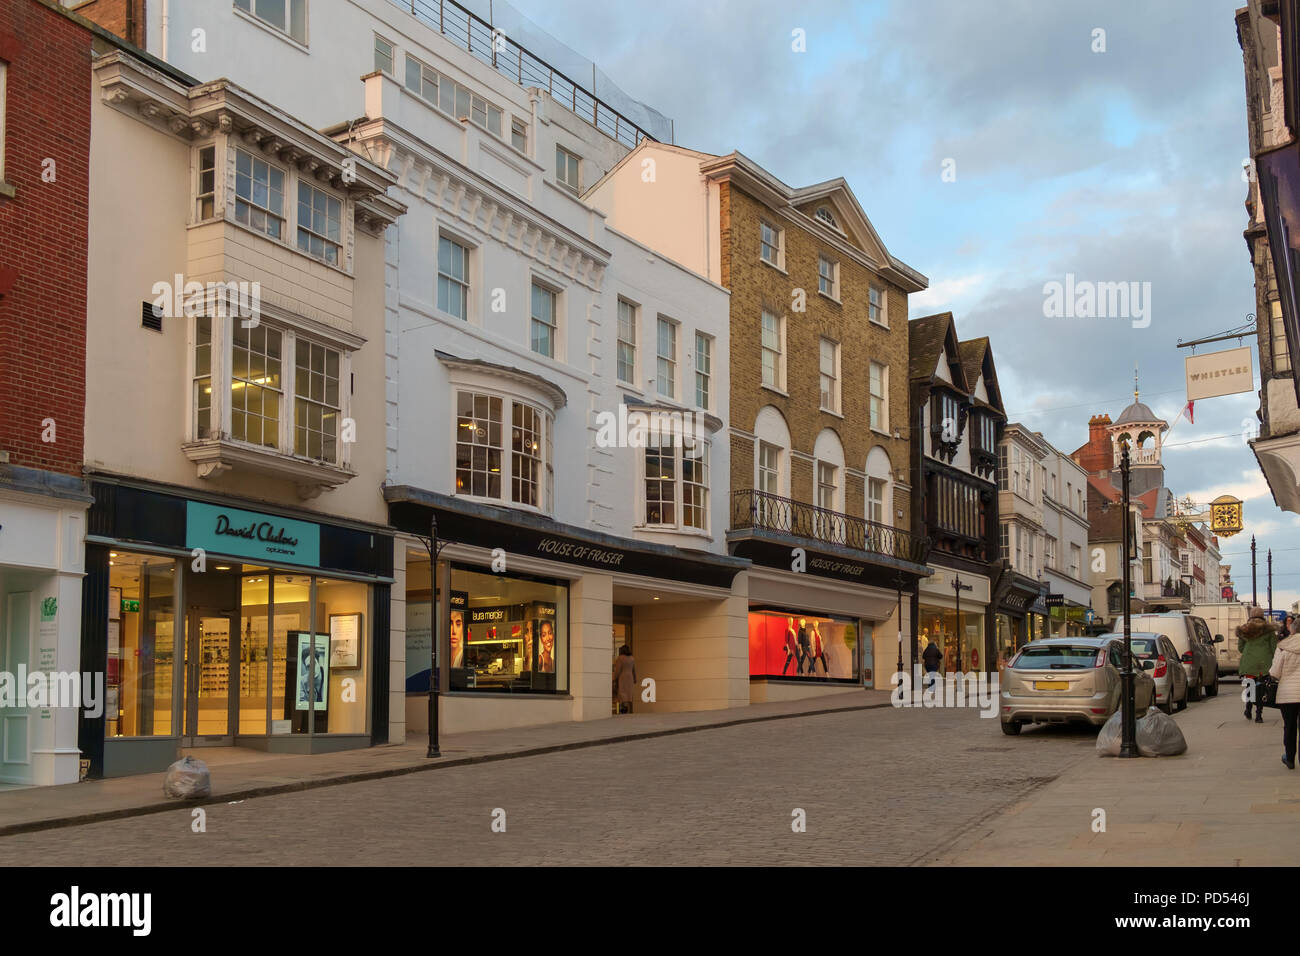 Guildford, UK - March 21st 2018: the high street with the House of Fraser department store occupying a prominent position - Stock Image